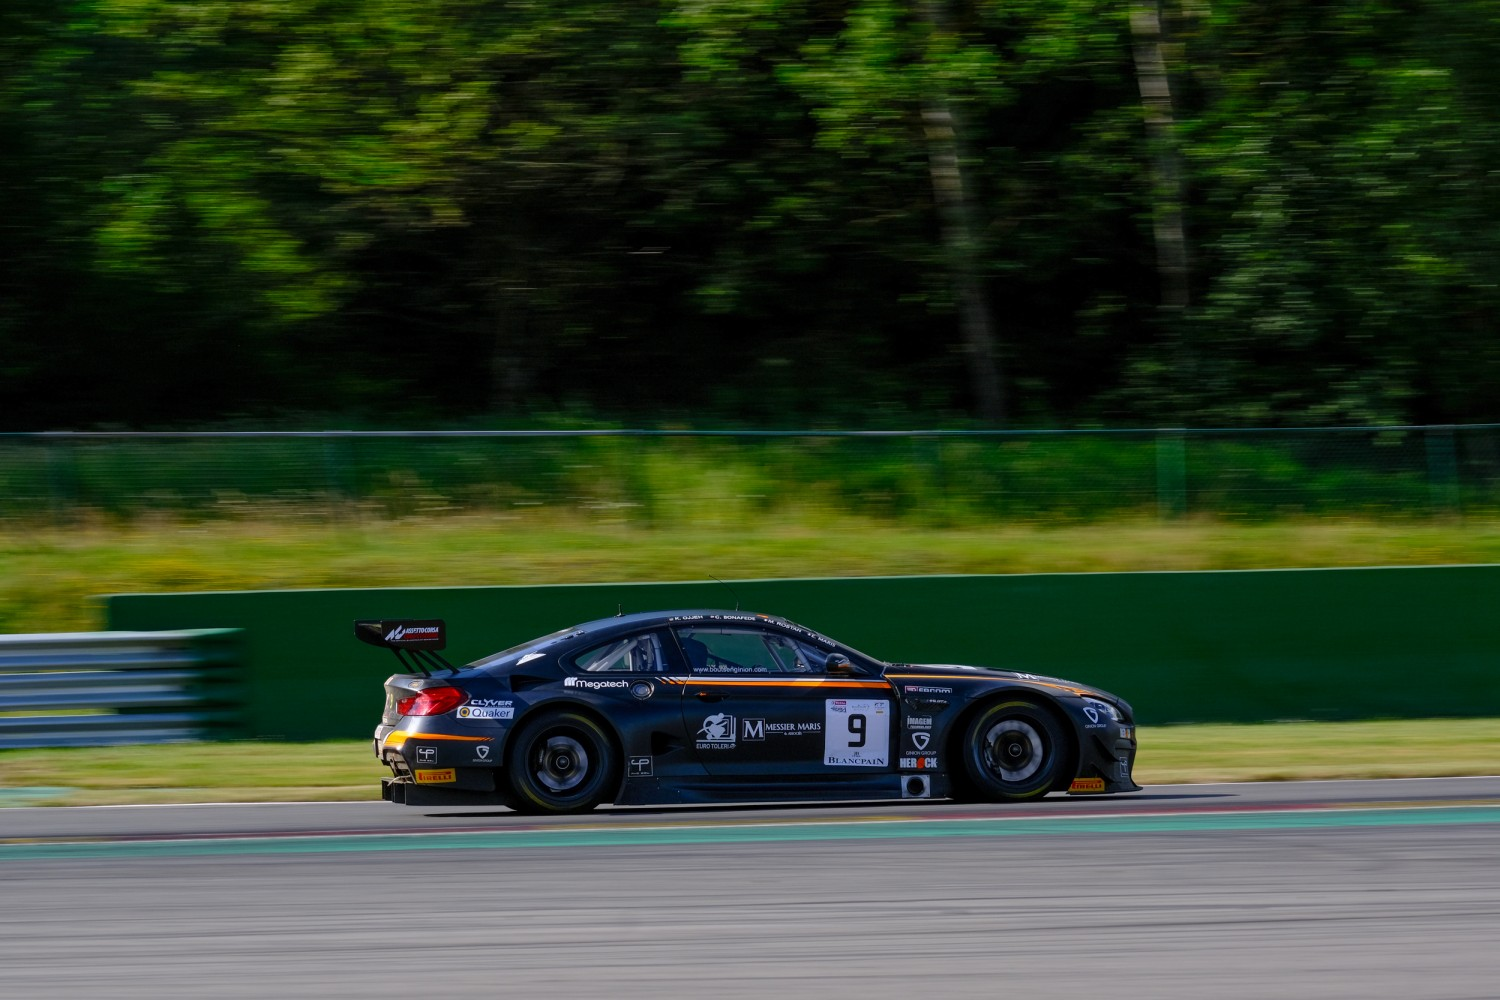 #9 Boutsen Ginion BEL BMW M6 GT3, Track  | SRO / Dirk Bogaerts Photography